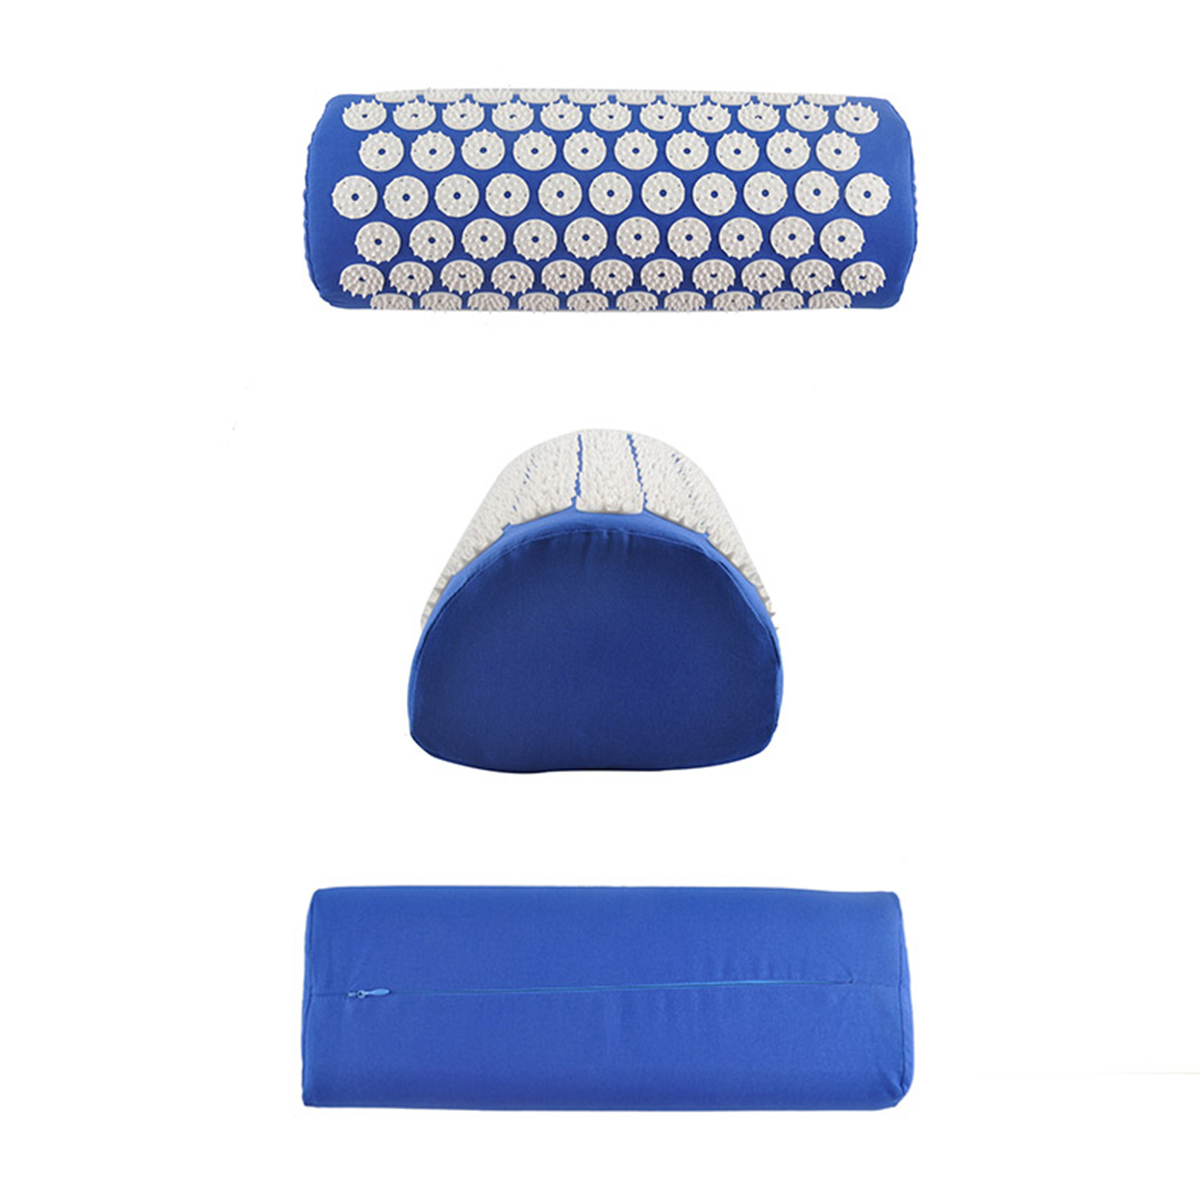 Acupressure Mat And Pillow Set For Back Neck Pain Relief